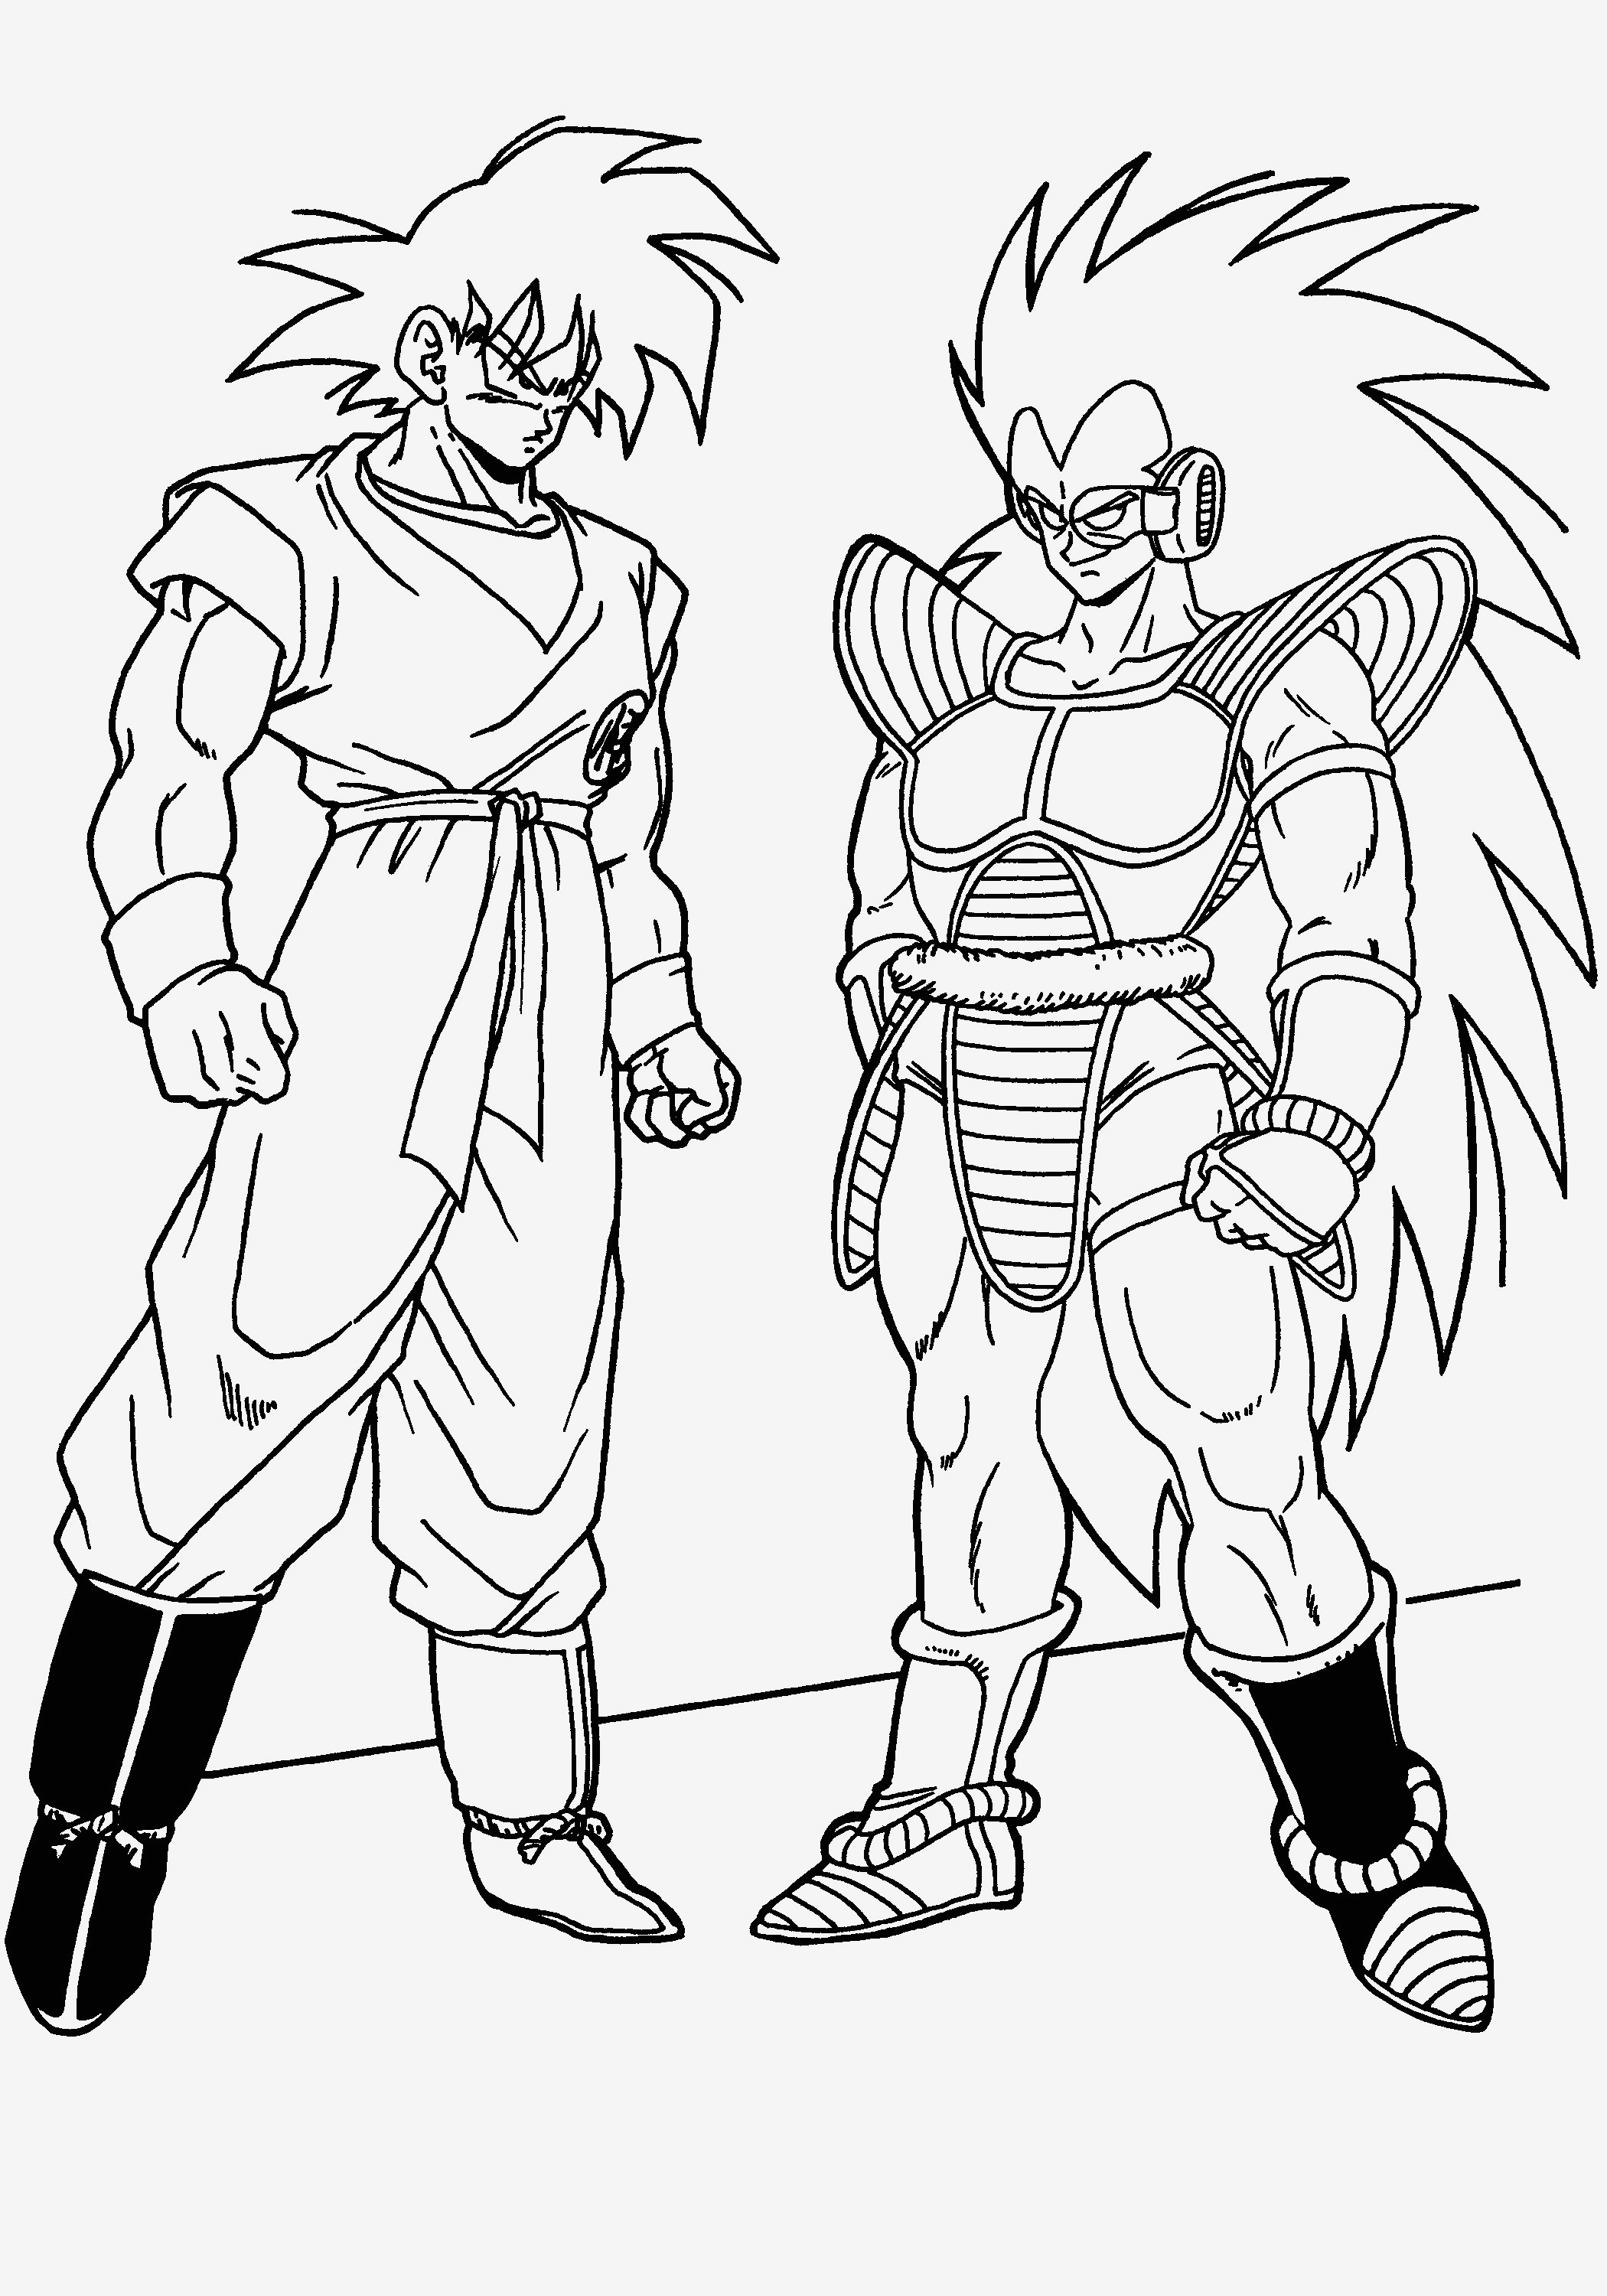 image relating to Dragon Ball Z Coloring Pages Printable named 23 Dragon Ball Z Coloring Internet pages Gallery - Coloring Sheets